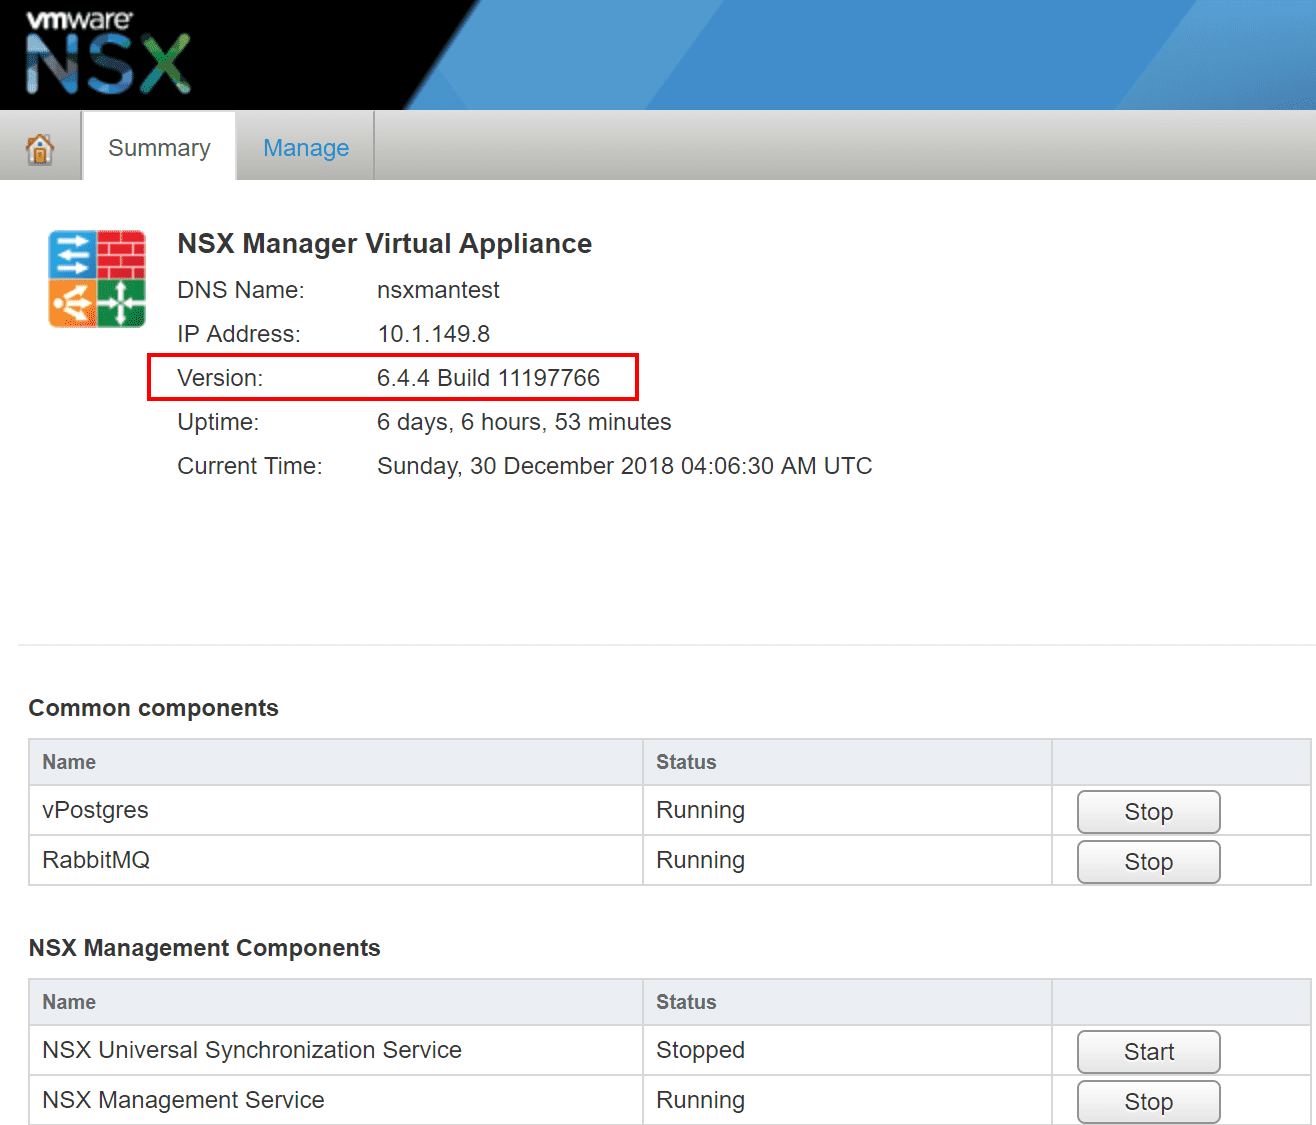 Verifying-the-NSX-Manager-version-is-6.4.4-after-the-upgrade Upgrading NSX Data Center for vSphere Manager to 6.4.4